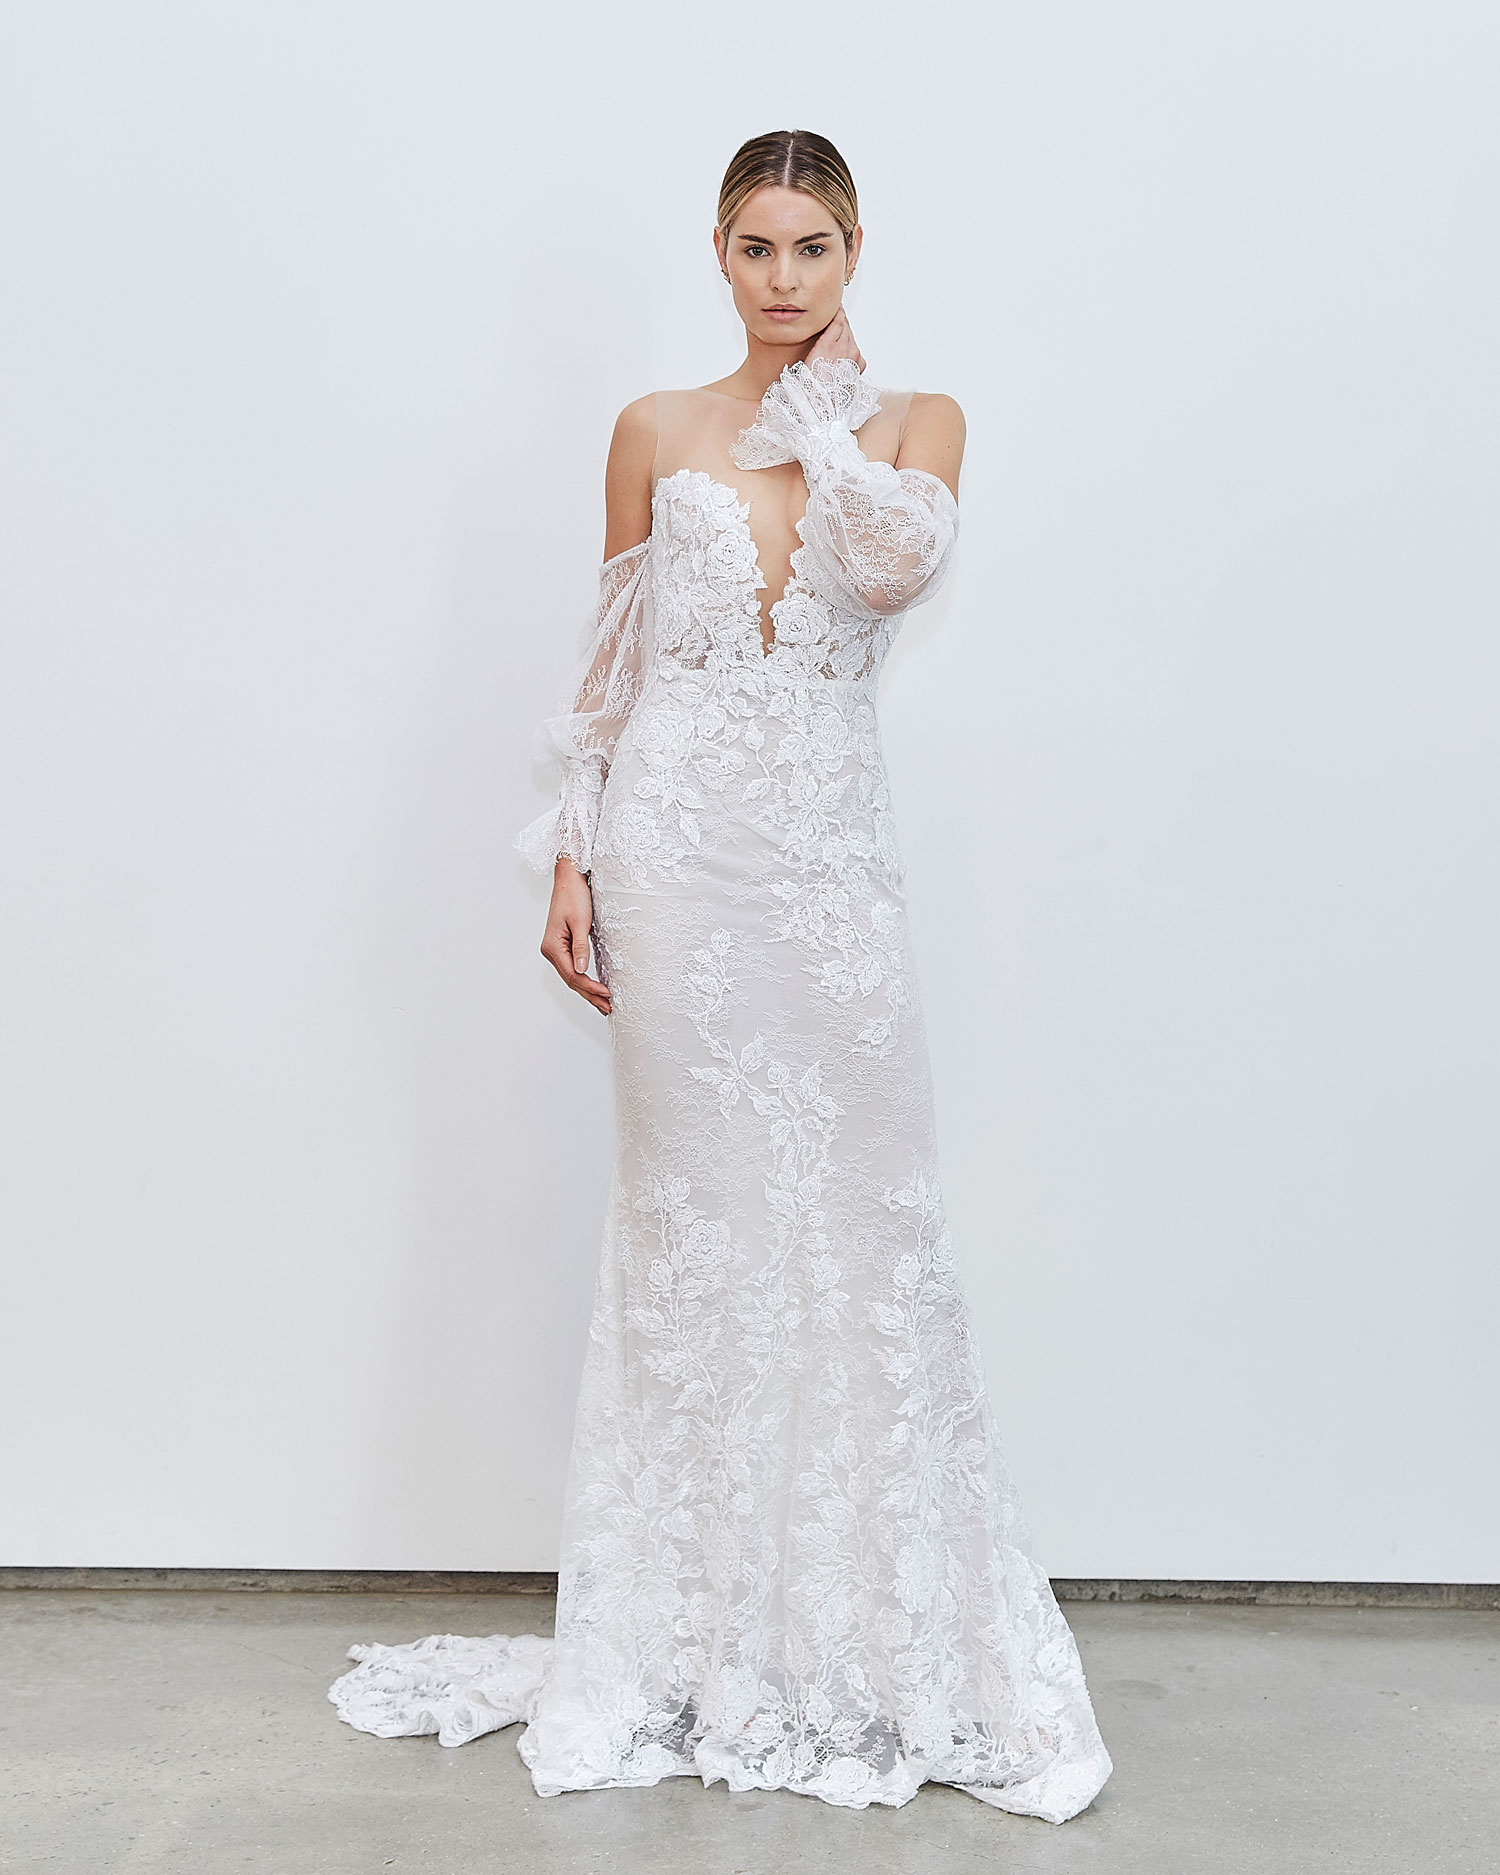 Francesca Miranda Fall 2020 bridal collection Alexis lace wedding dress illusion neckline detachable sleeves puffy around wrist